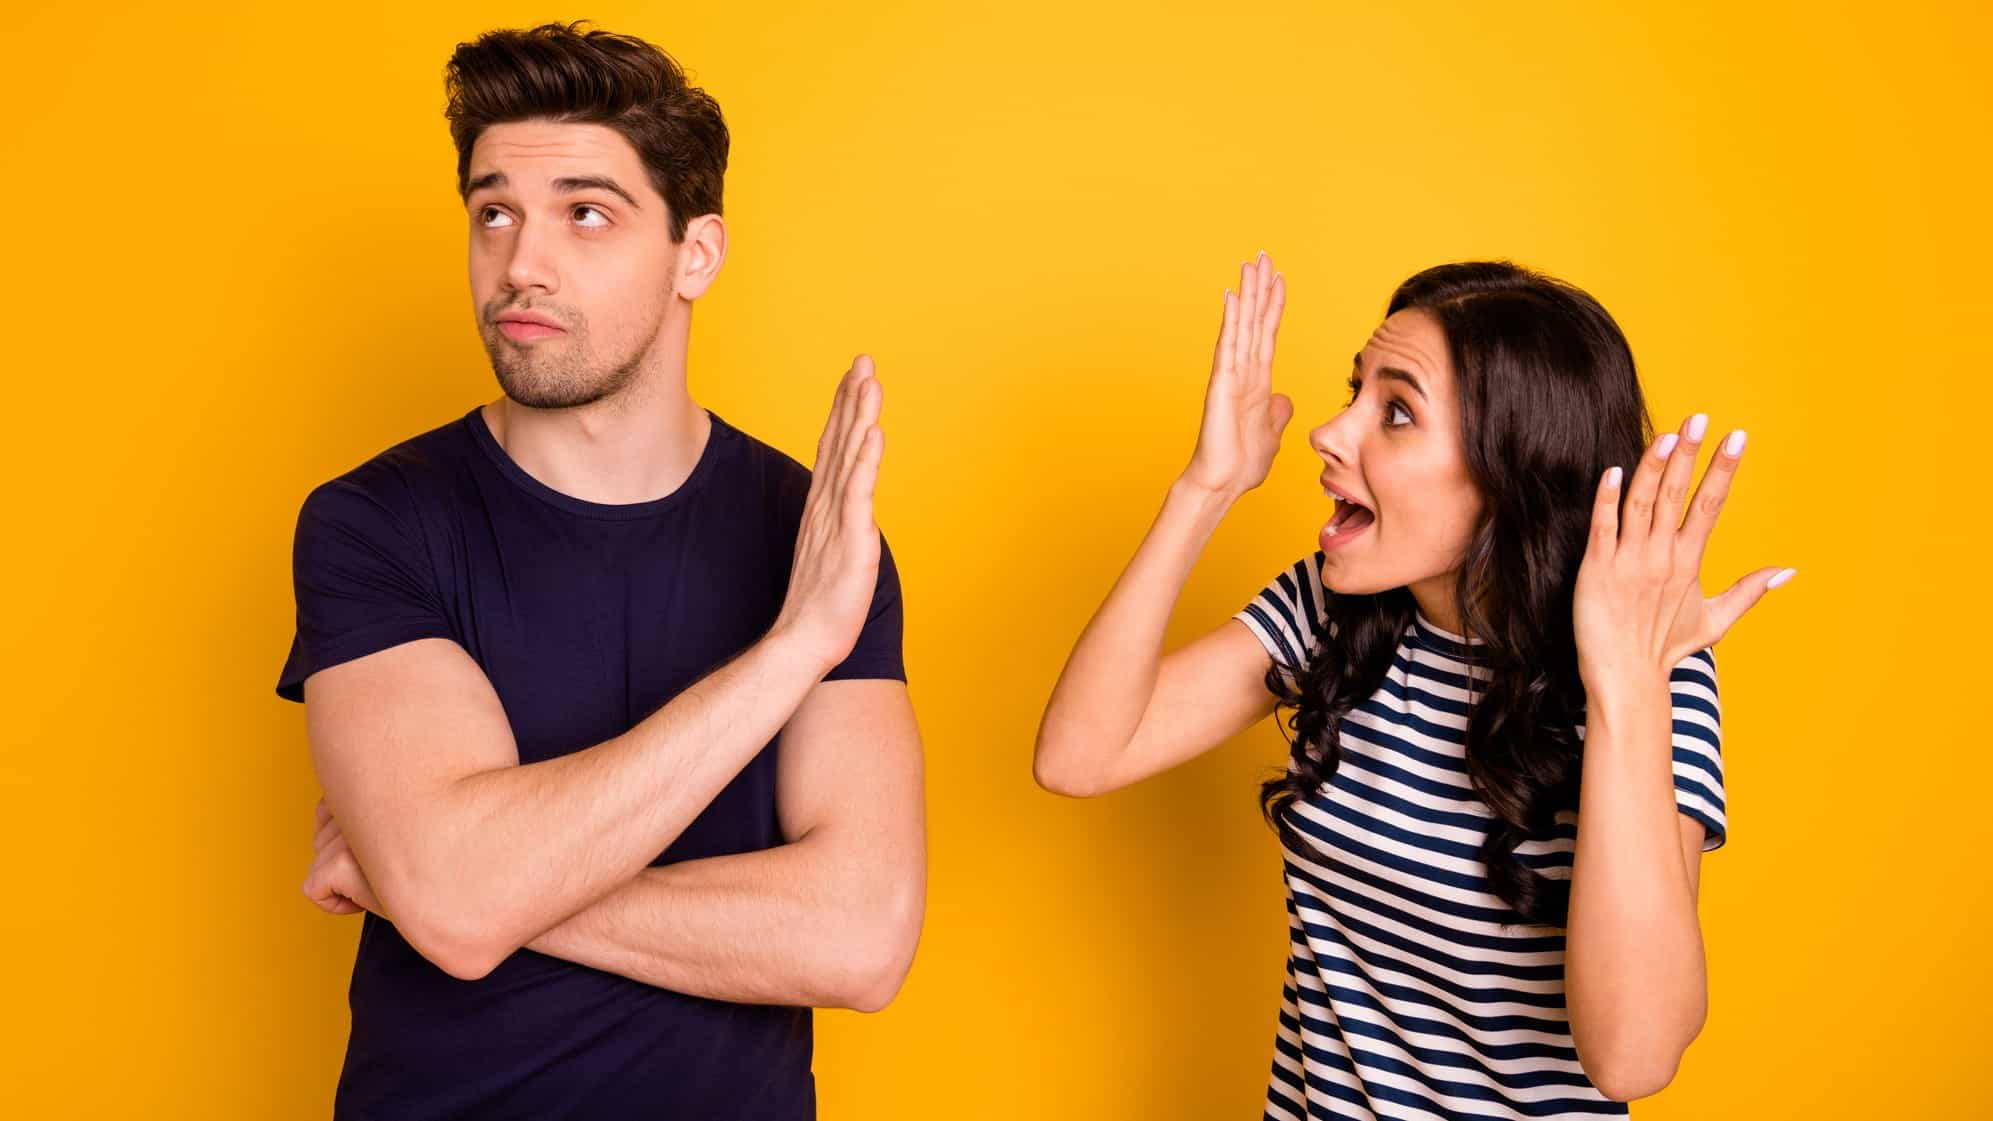 A couple young arguing against a yellow backdrop, indicating a tussle over business decision